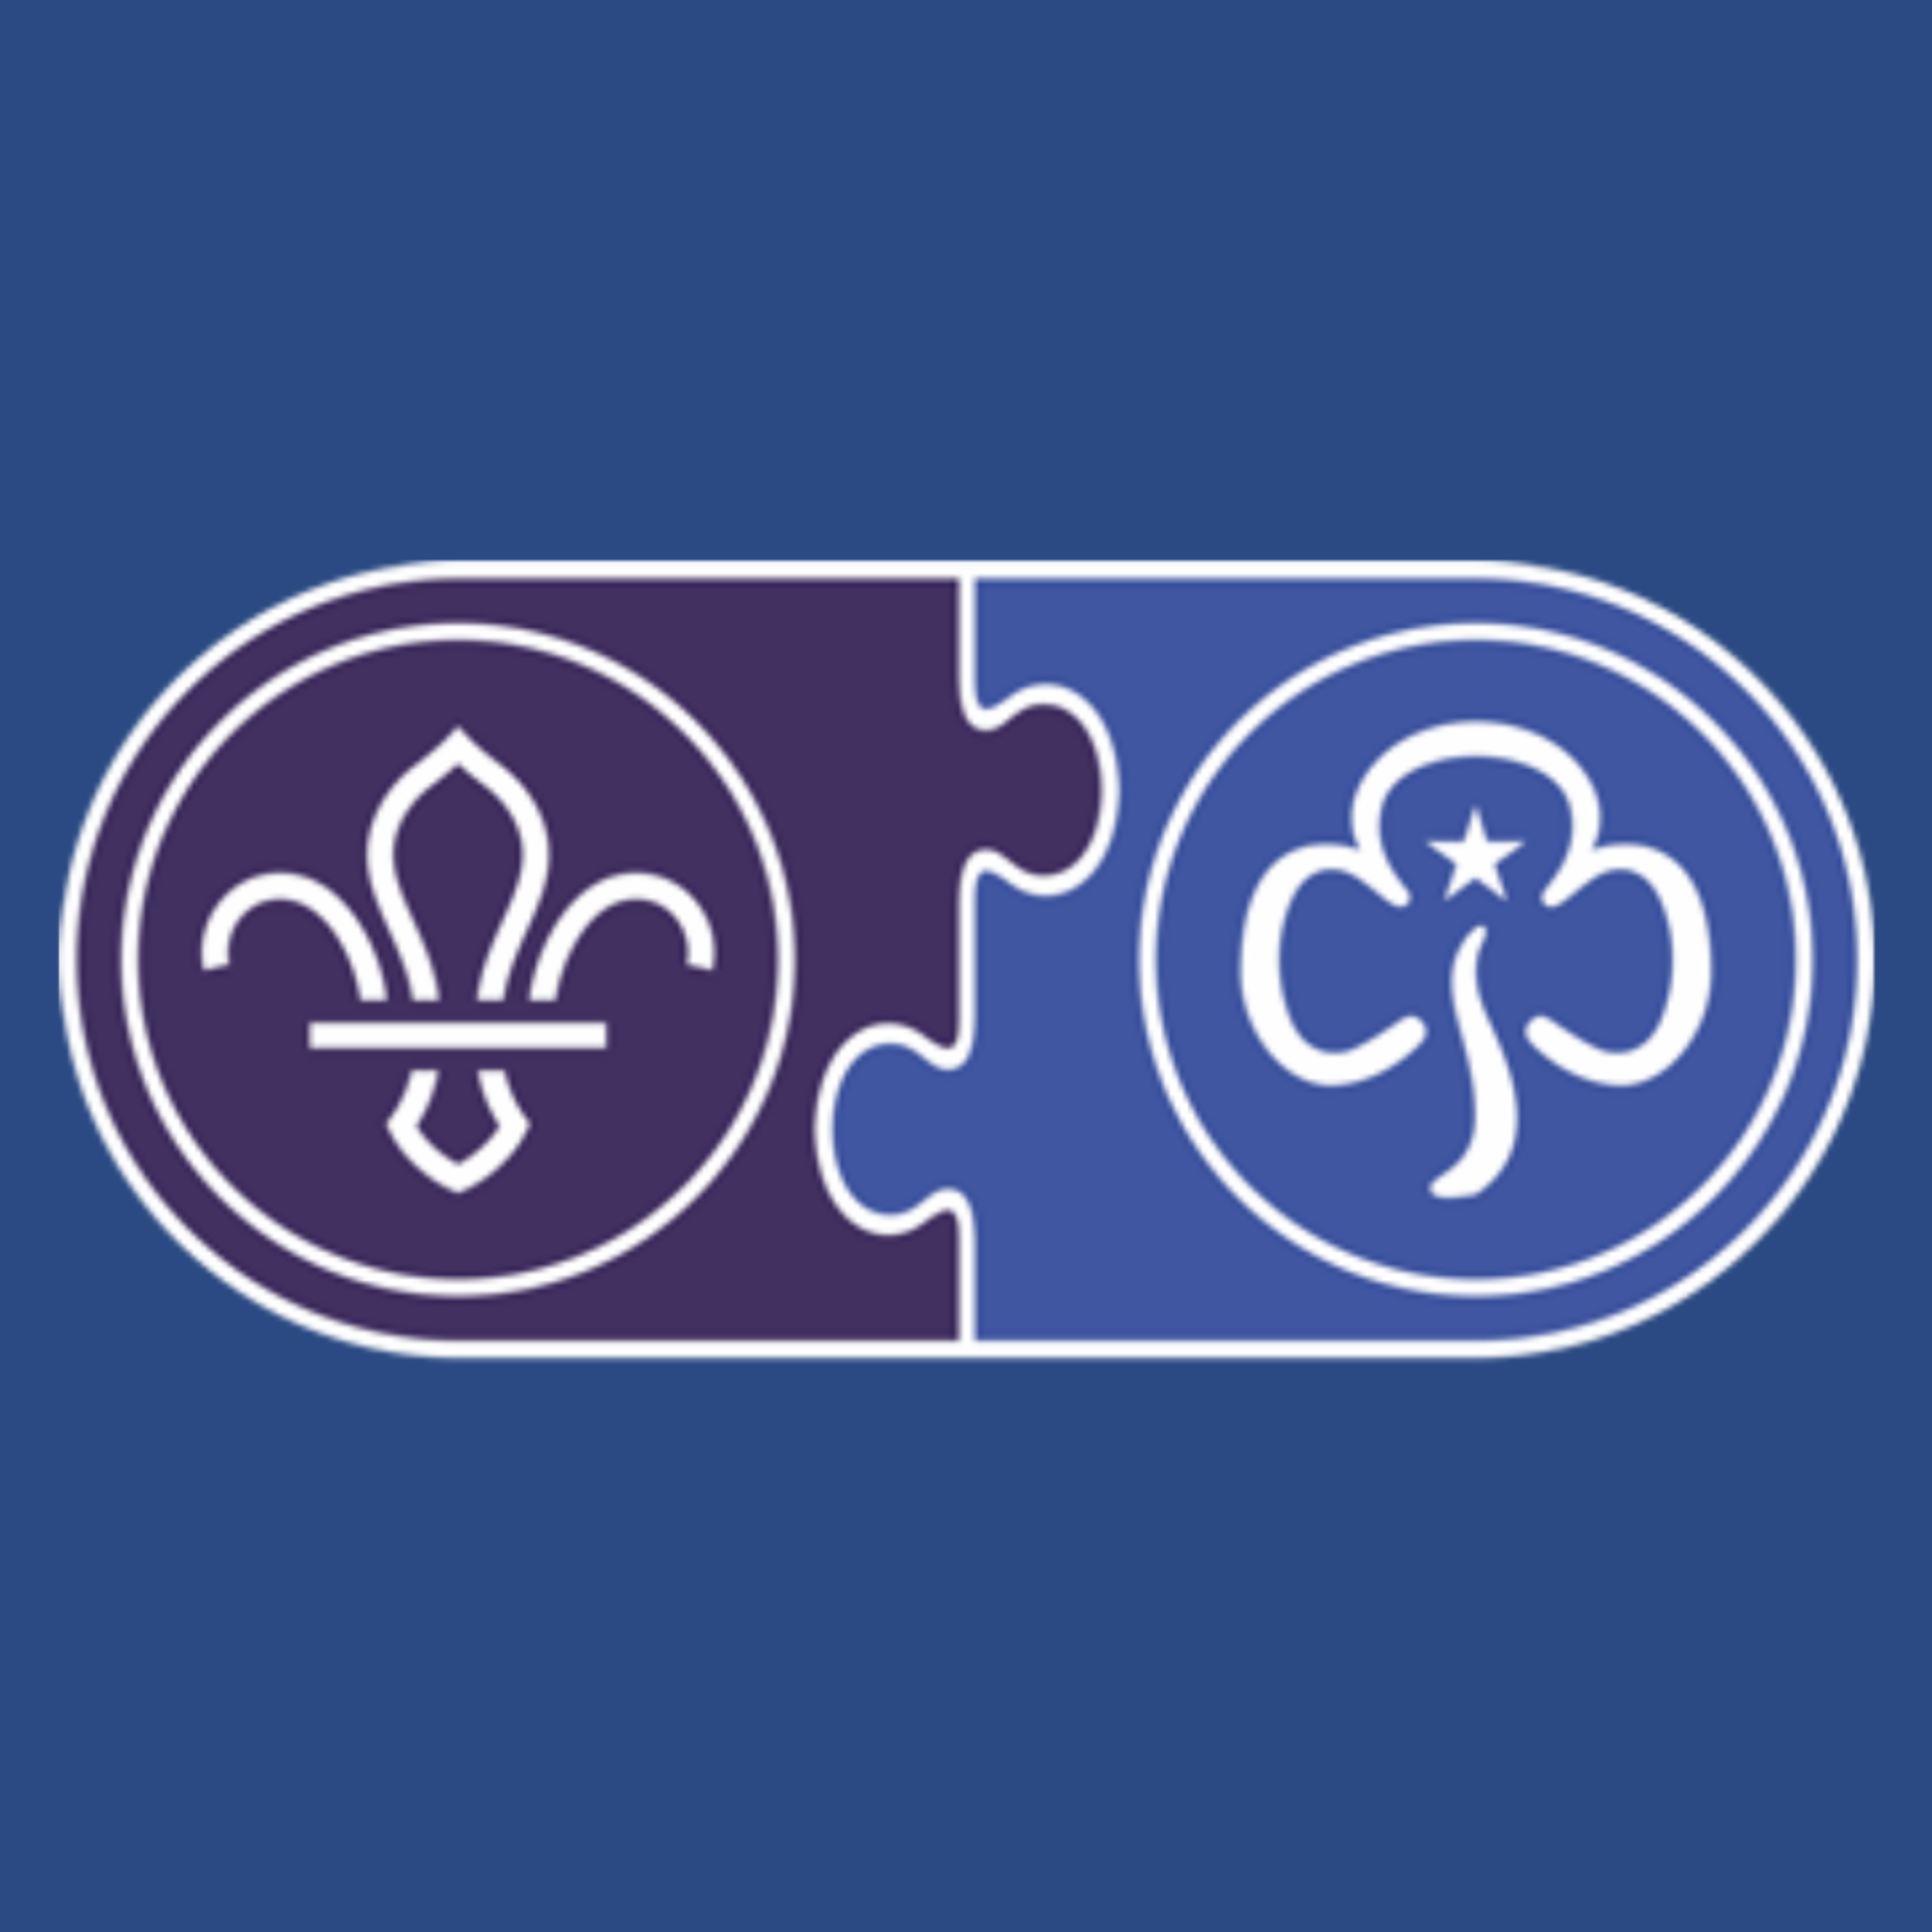 Guides & Scouts